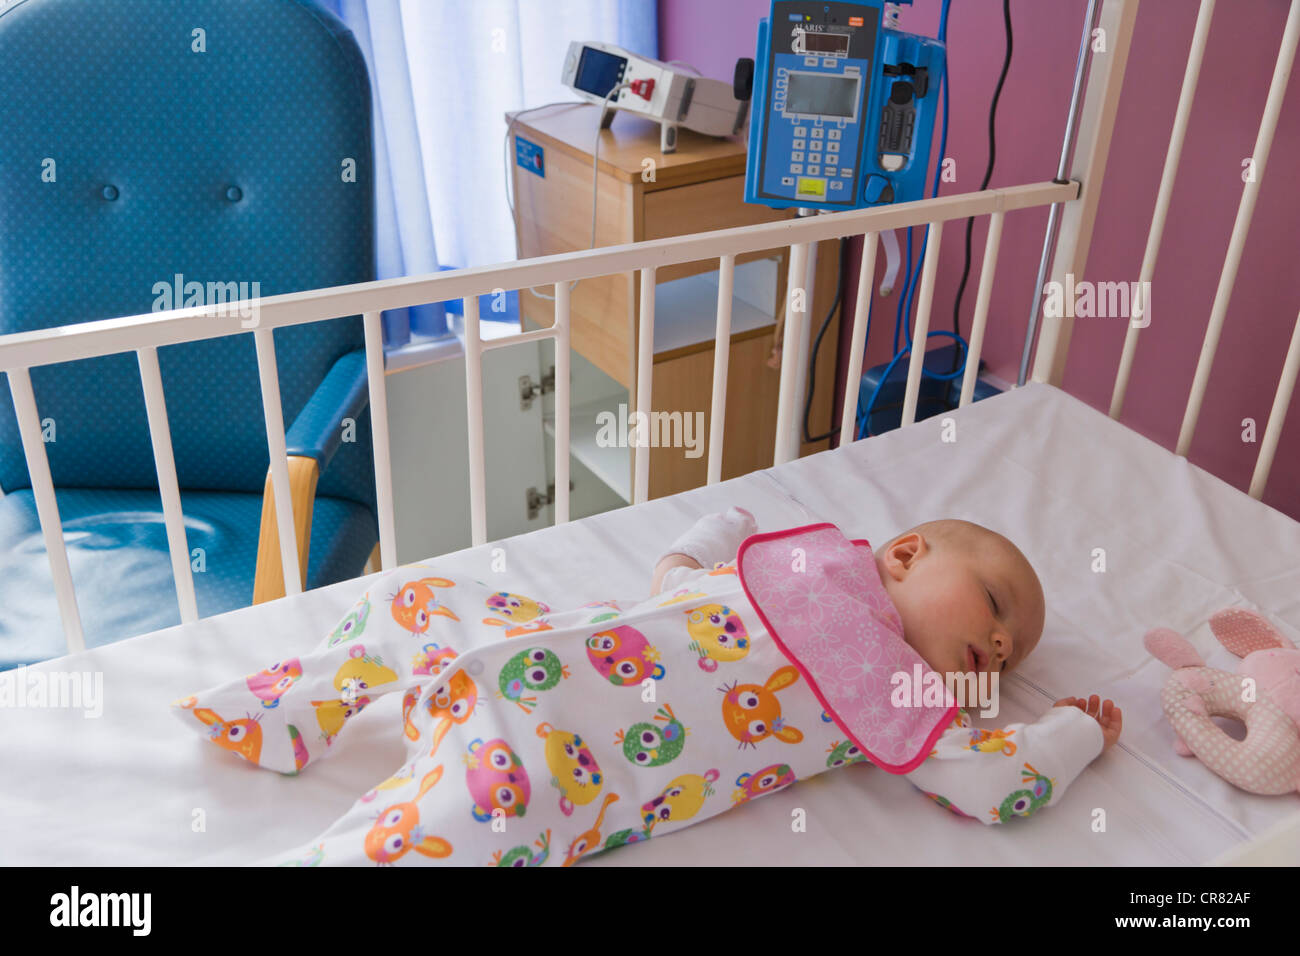 baby girl 6 months sleeping in the cot bed in the nhs hospital stock photo 48735303 alamy. Black Bedroom Furniture Sets. Home Design Ideas